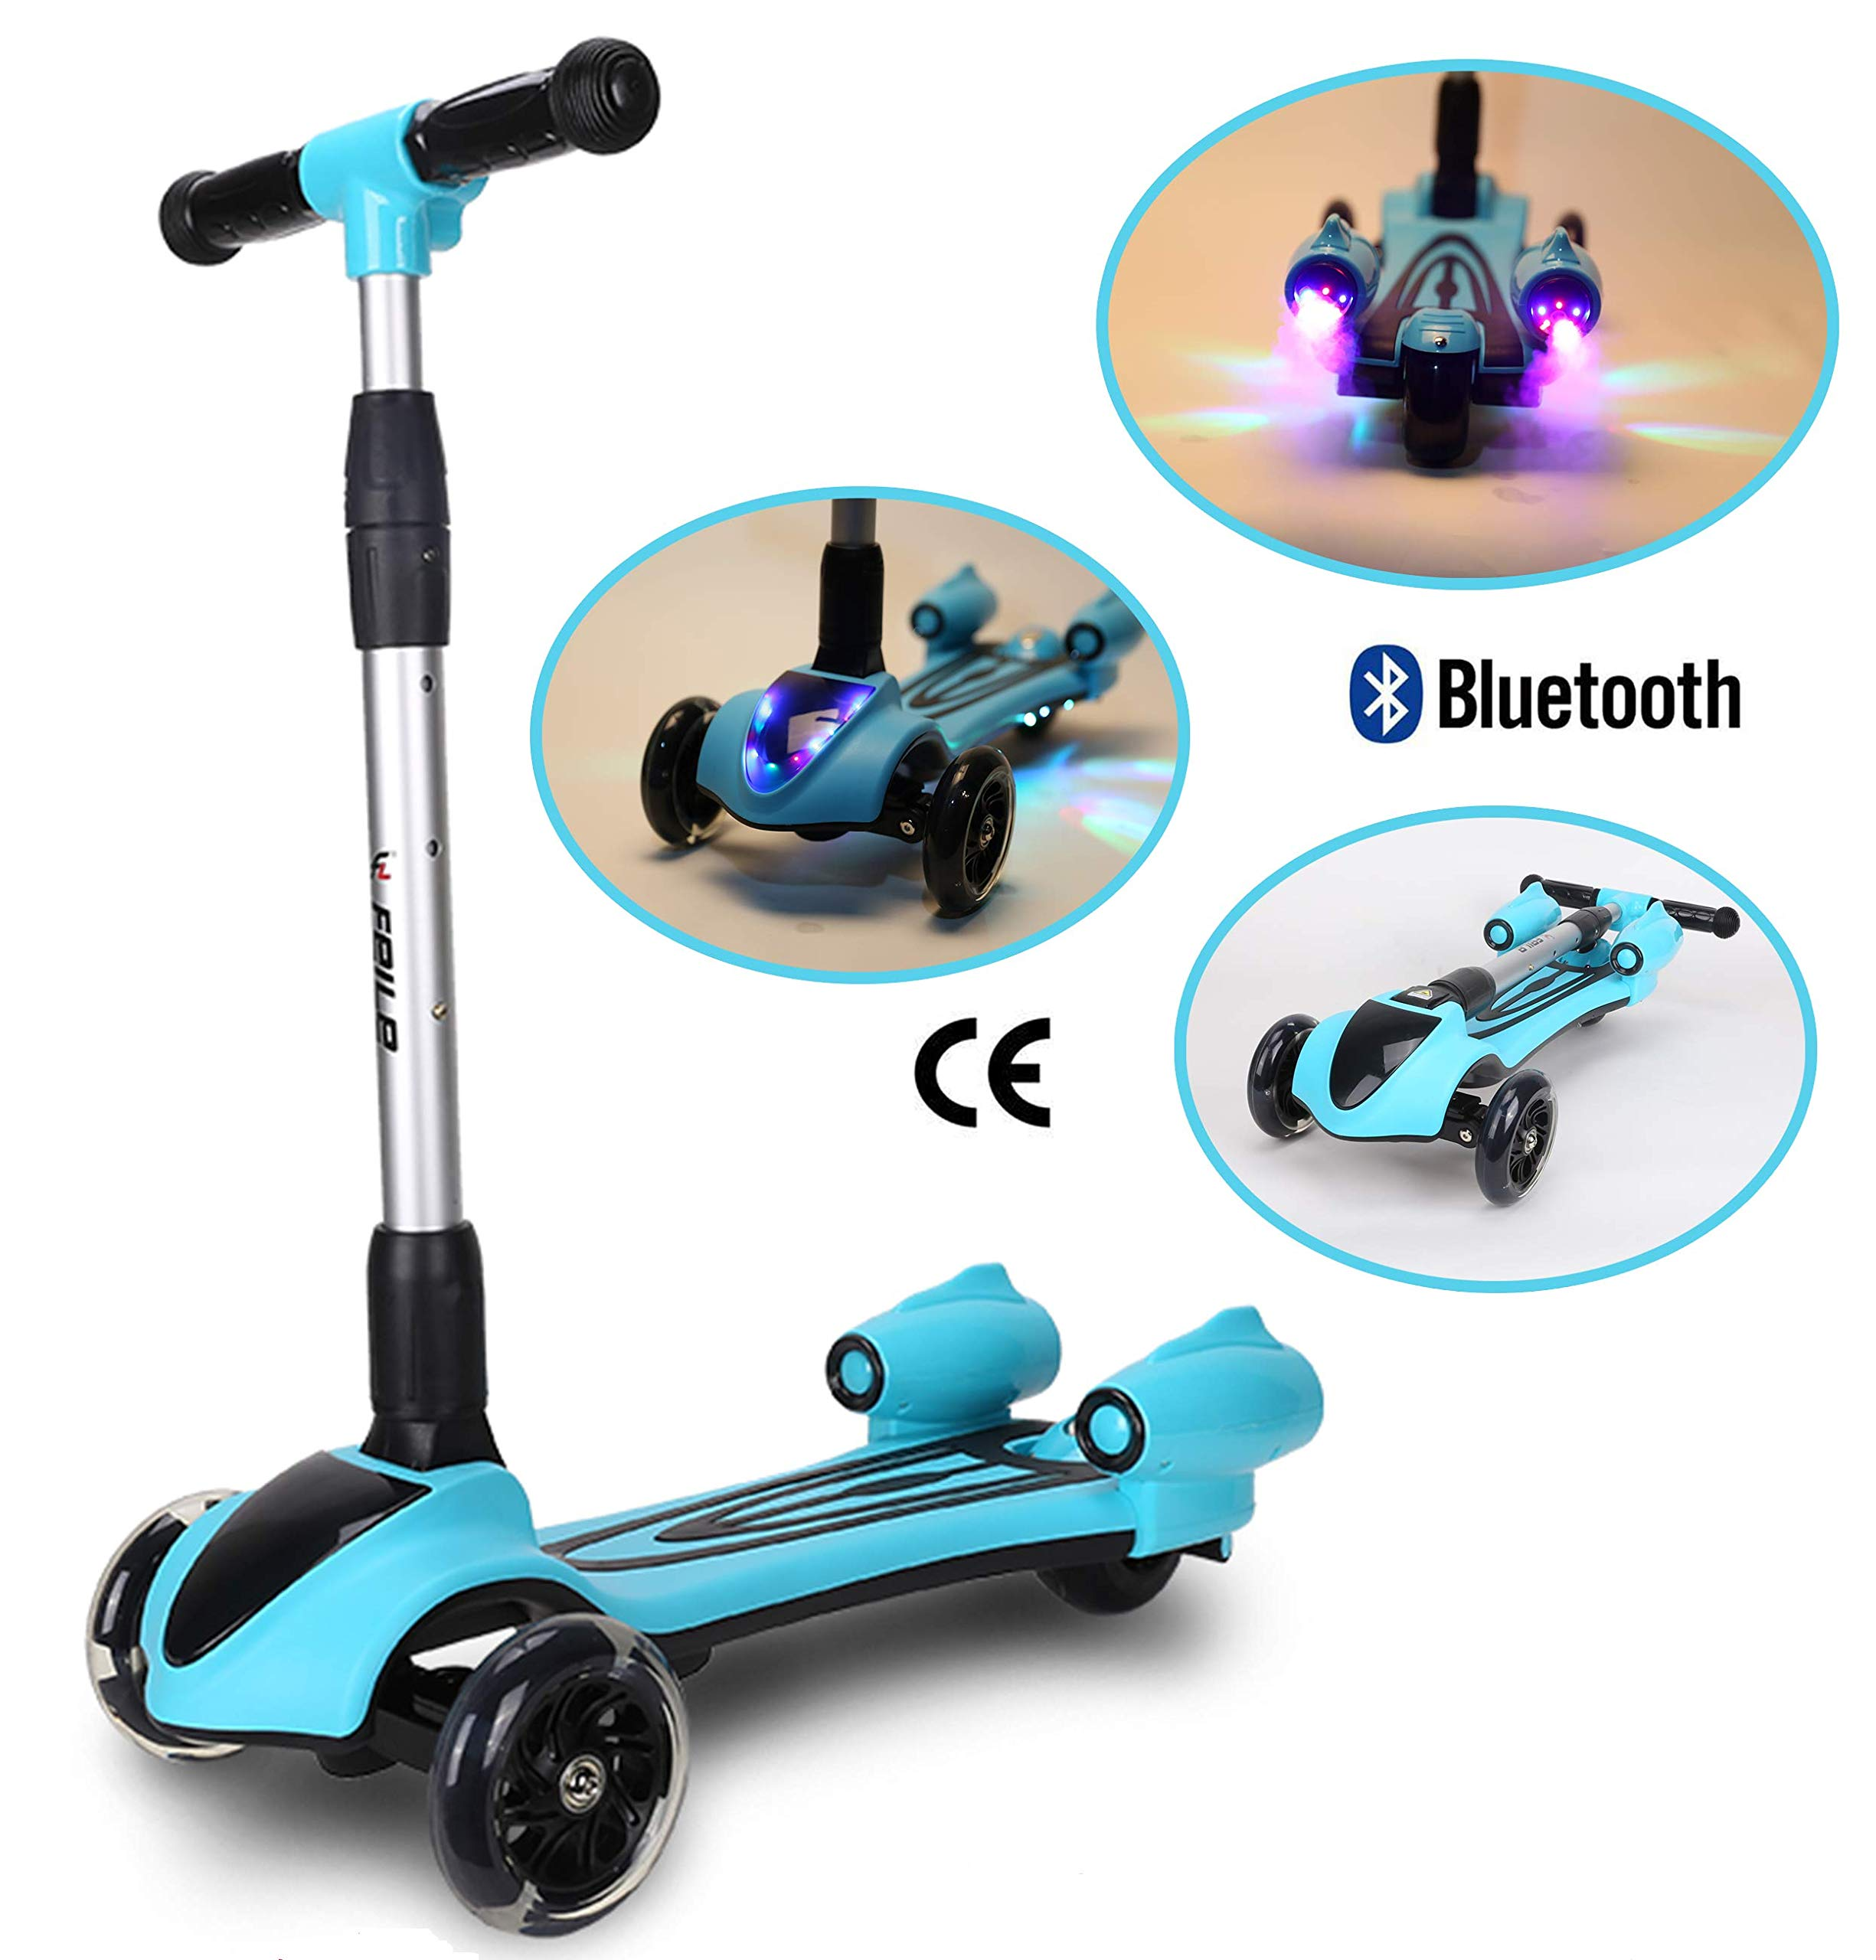 SHRAGIS Adjustable 3 Wheel Kids Scooter for Boys and Girls with Light Up Wheels, Bluetooth Speaker, Smoke Machine - Kick Scooters for Toddlers - Kids Exercise & Toddler Outdoor Toys (Blue)